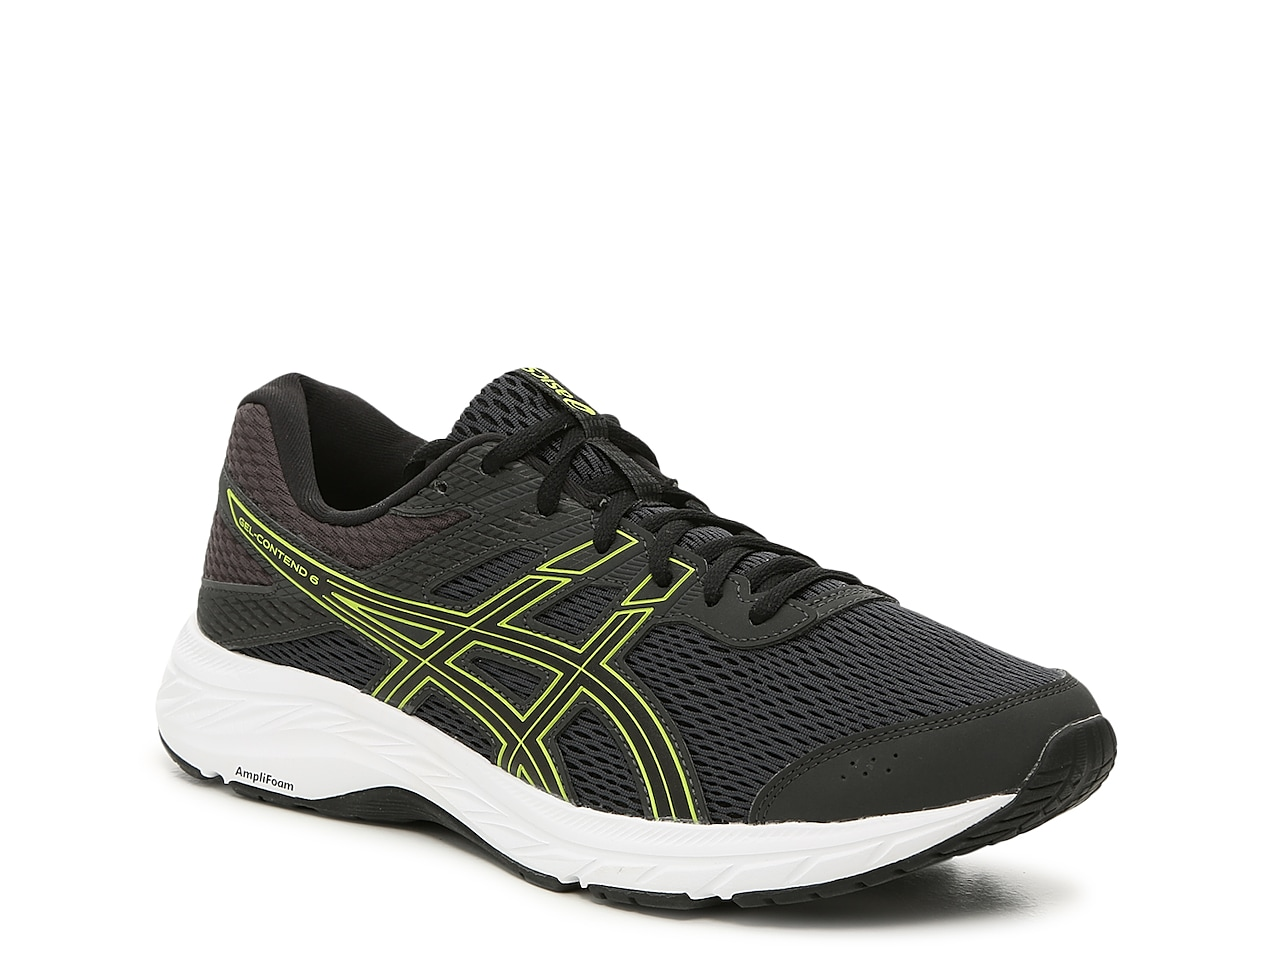 GEL-Contend 6 Running Shoe - Men's